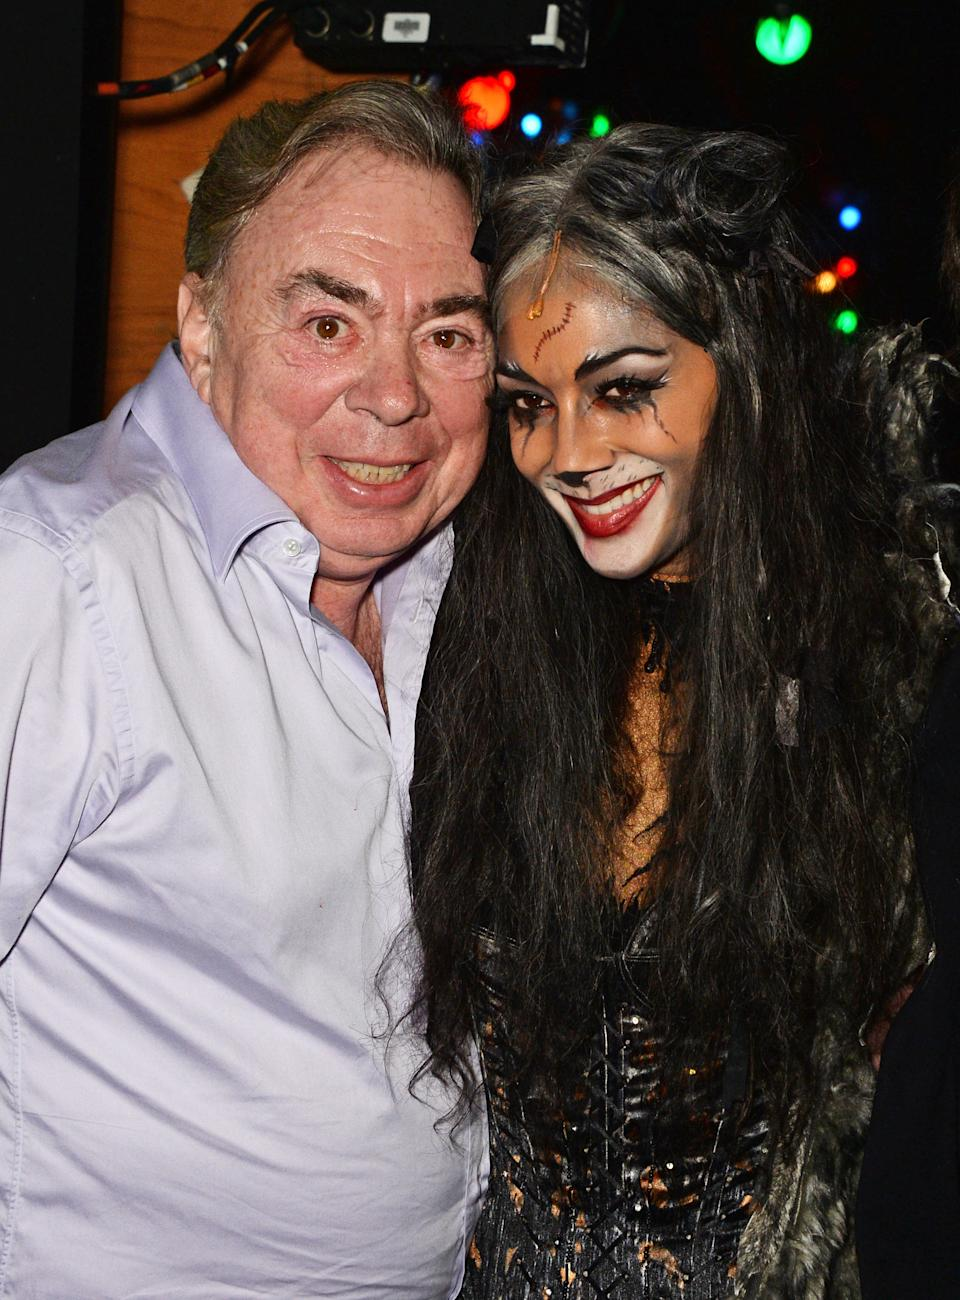 """LONDON, ENGLAND - DECEMBER 11:  Lord Andrew Lloyd Webber (L) and Nicole Scherzinger pose backstage following the press night performance of """"Cats"""" as Nicole Scherzinger joins the cast at the London Palladium on December 11, 2014 in London, England.  (Photo by David M. Benett/Getty Images)"""